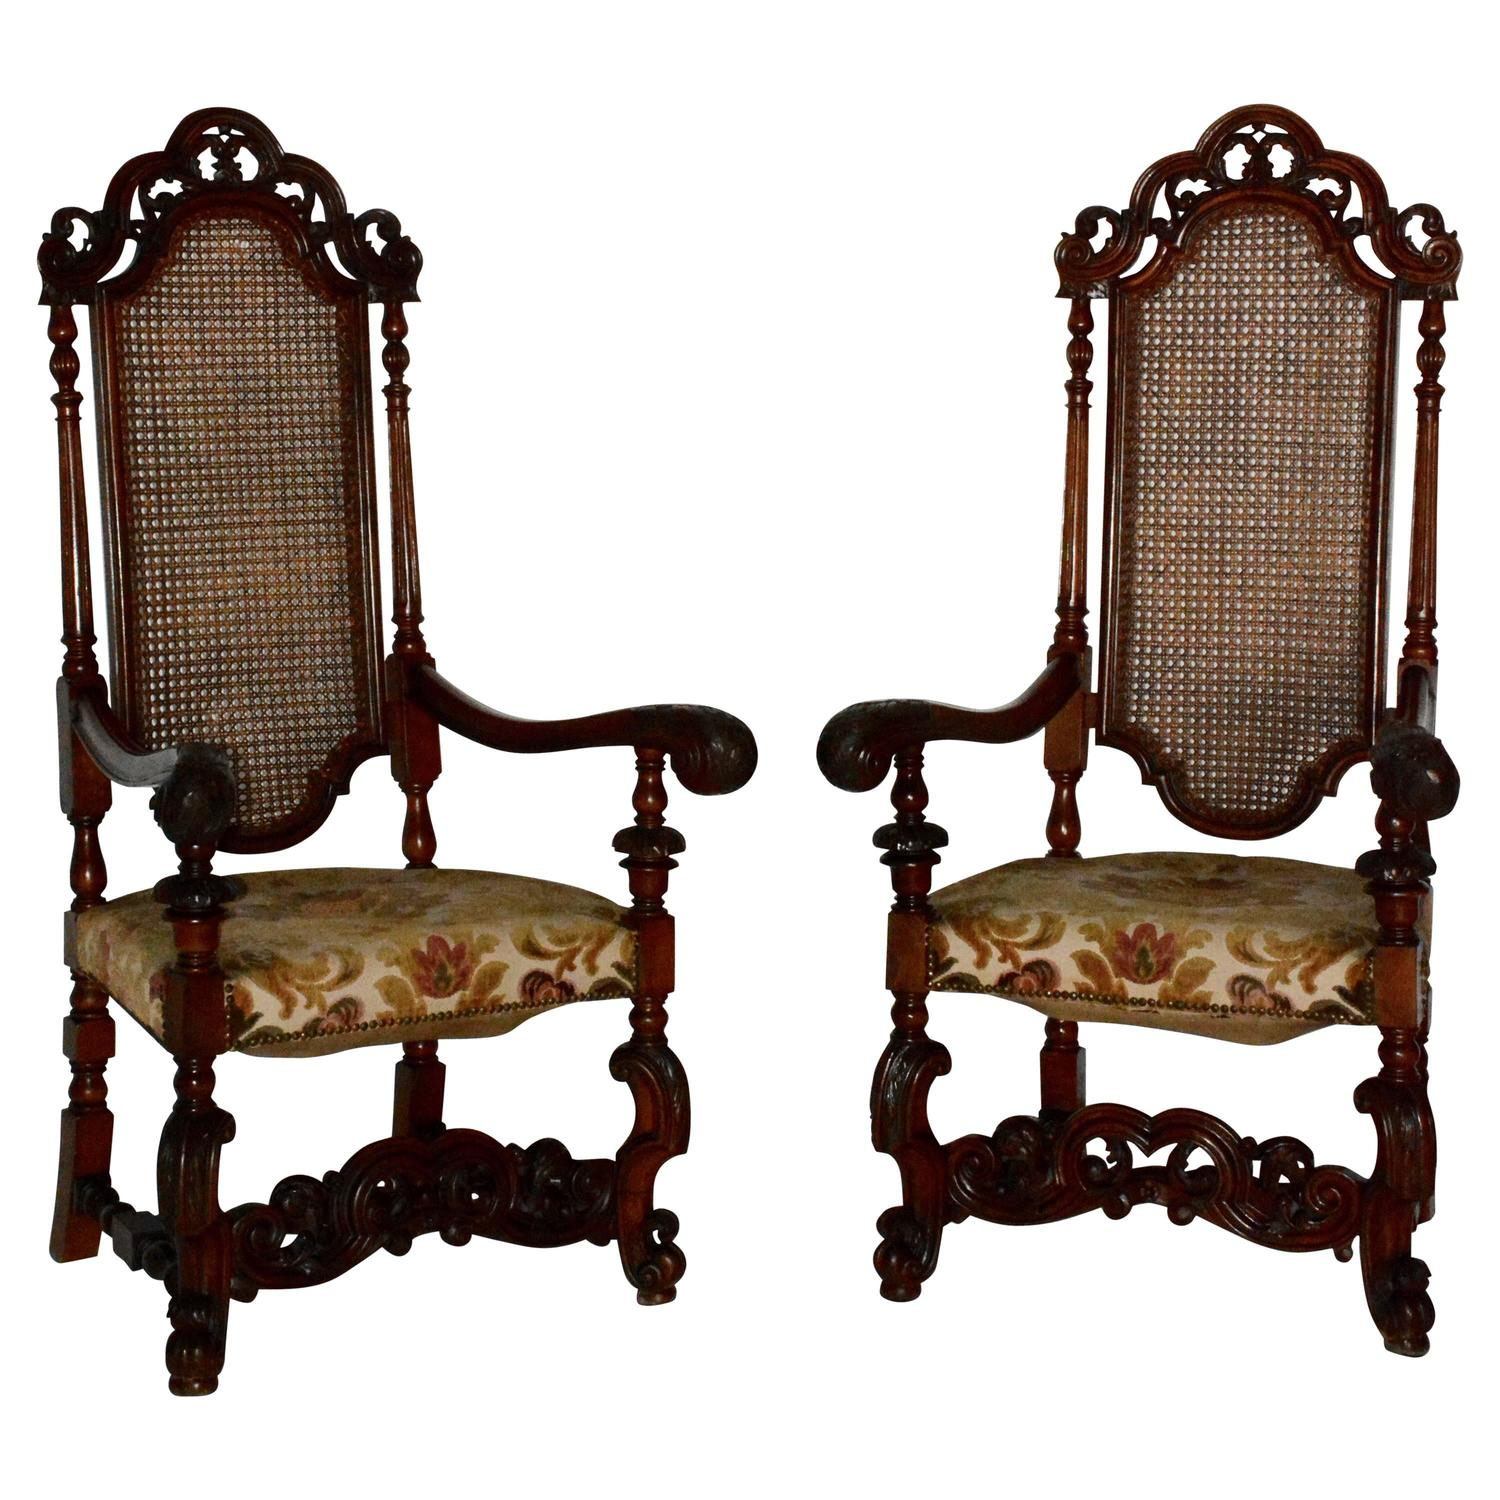 Pair of spanish baroque high back chairs for sale at 1stdibs for Spanish baroque furniture